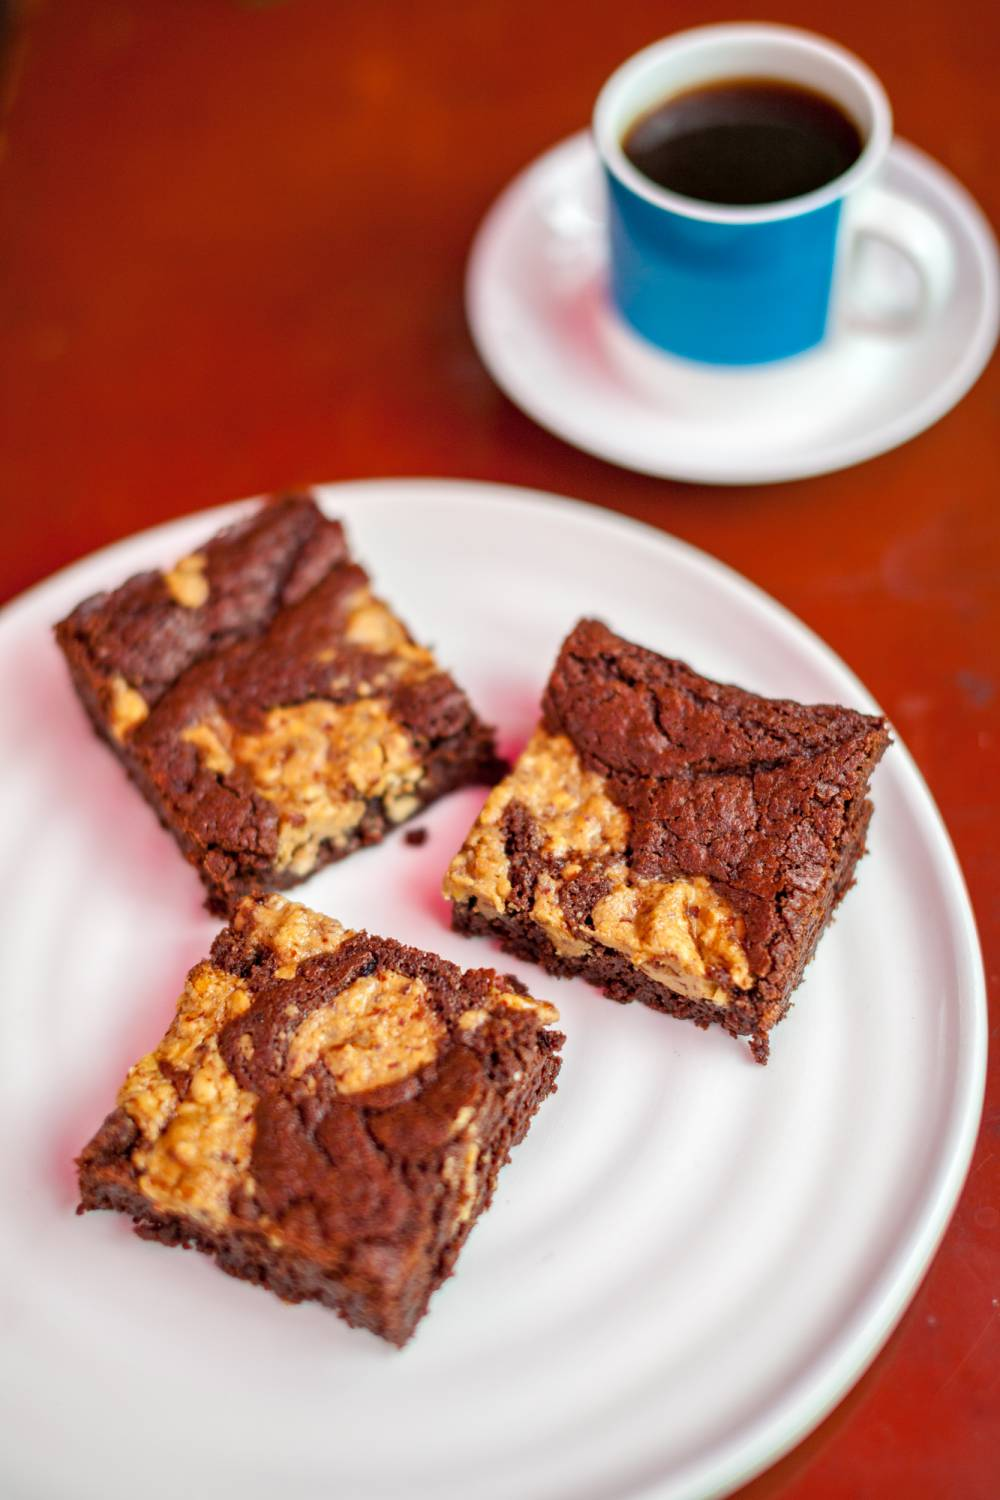 Peanut Butter Brownie - Not At All Bad!